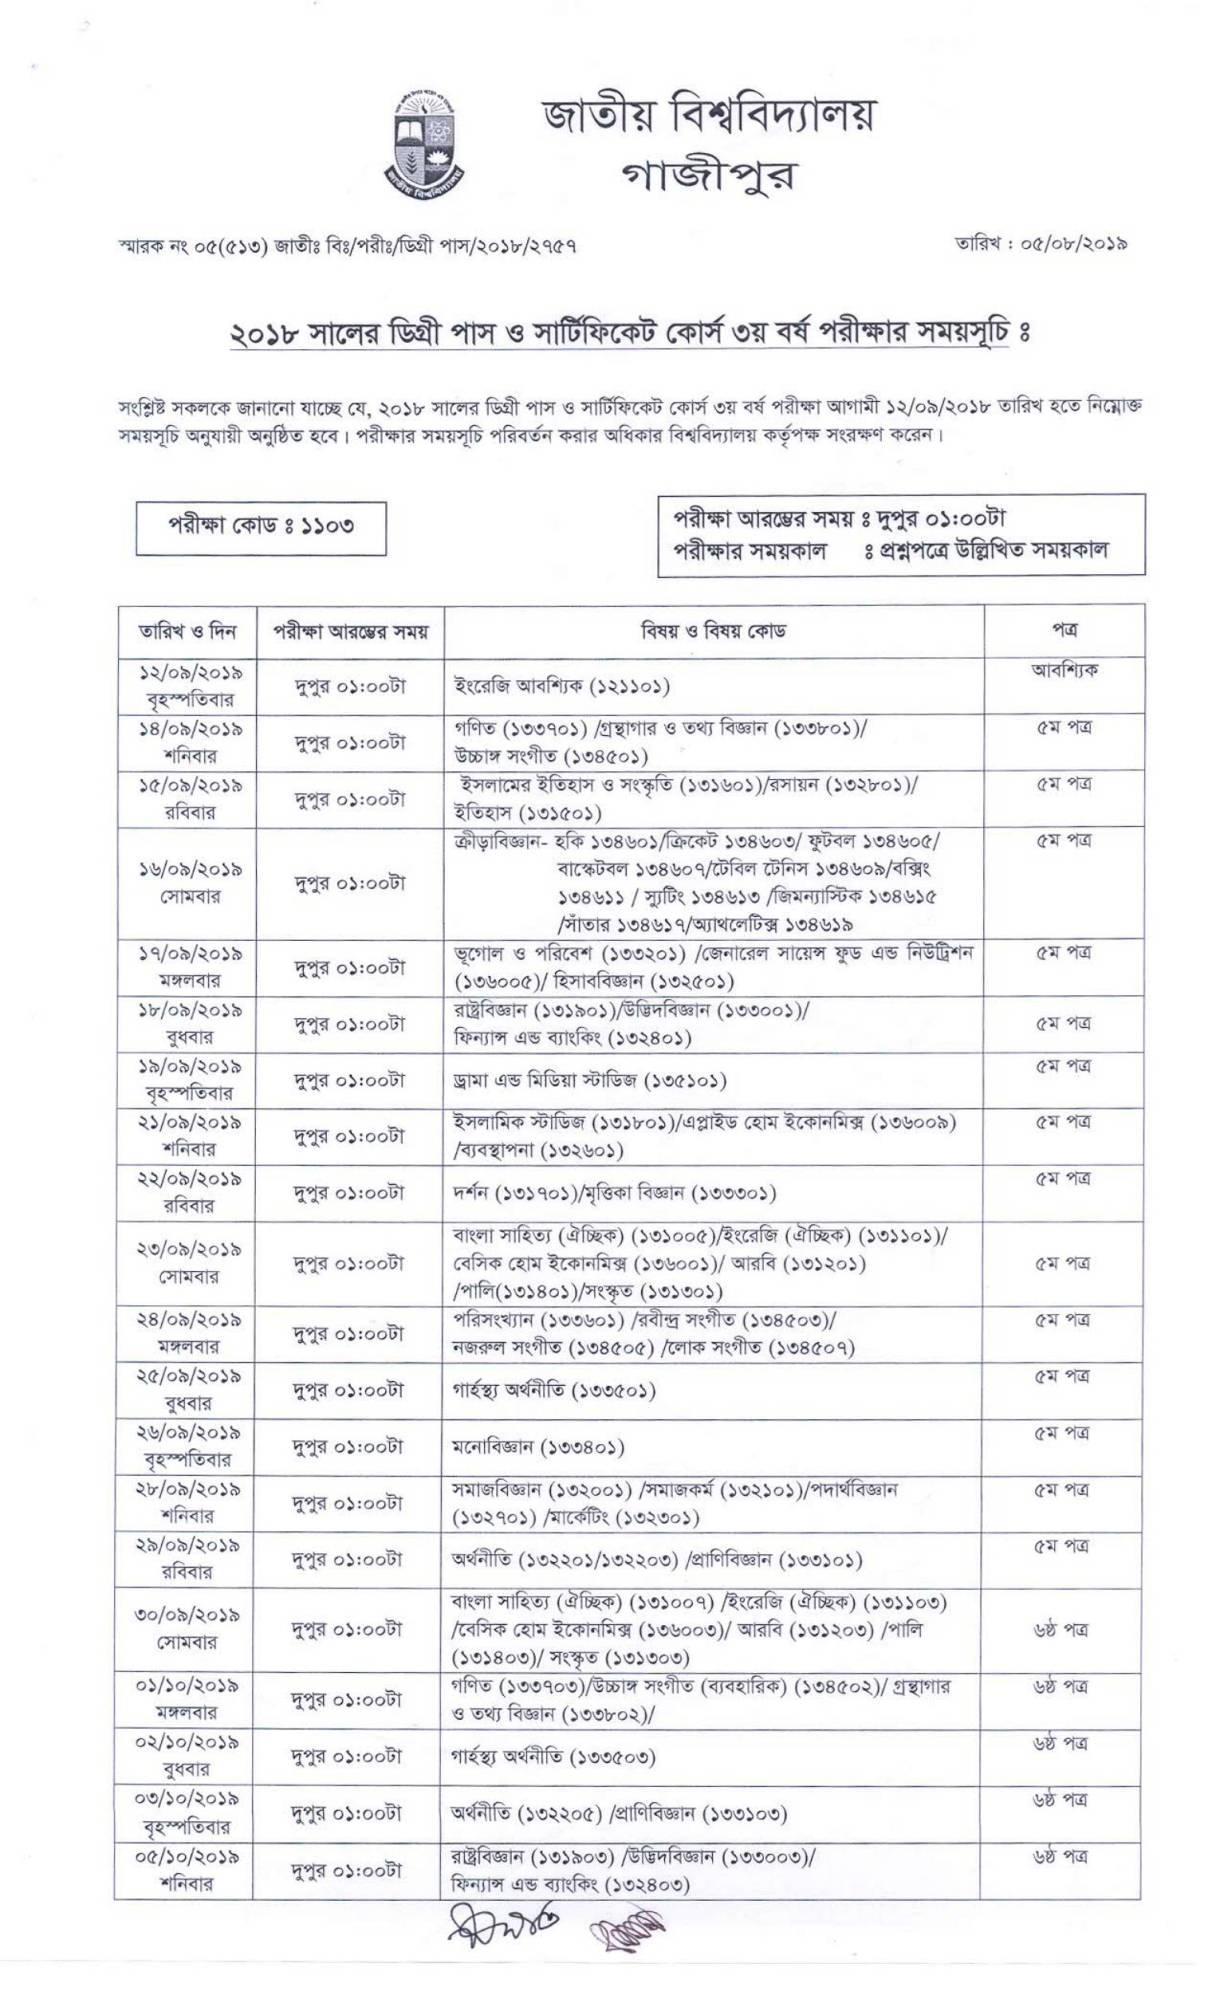 NU Degree 3rd Year Exam Routine 2019 PDF Download